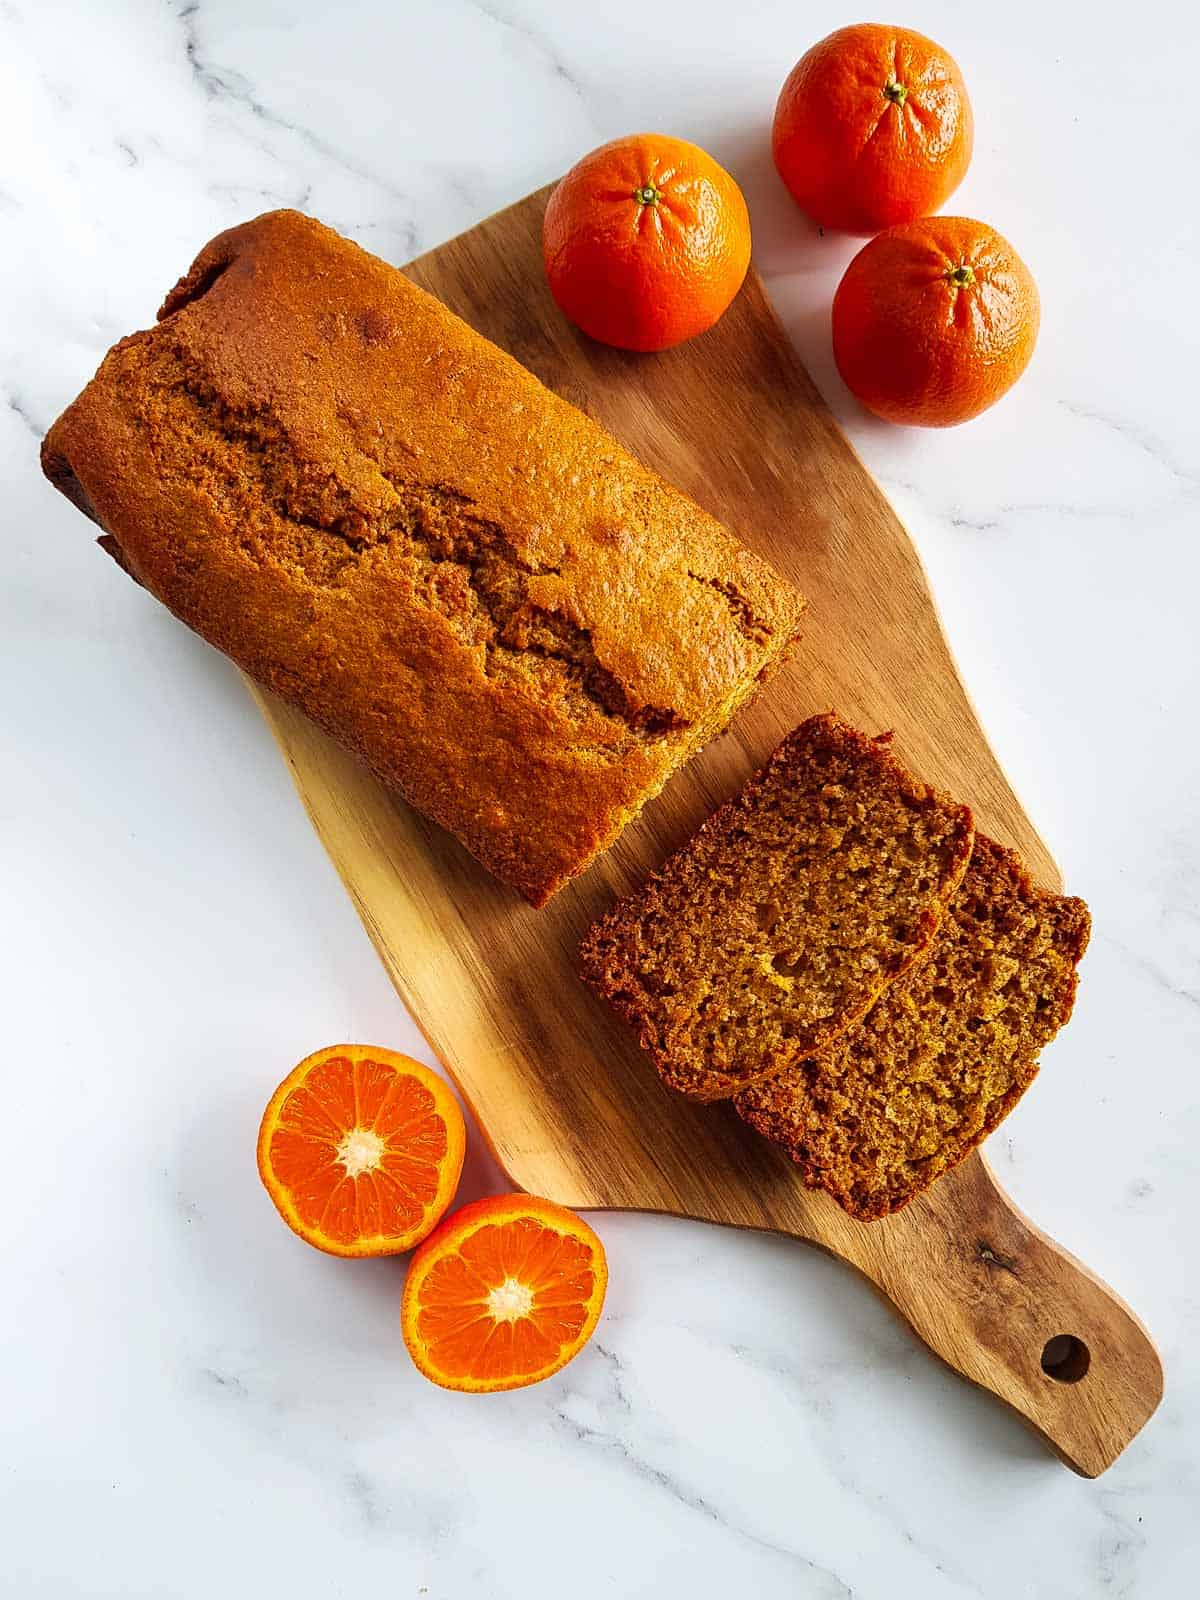 Healthy orange loaf cake on a wooden chopping board, with two slices sliced off.